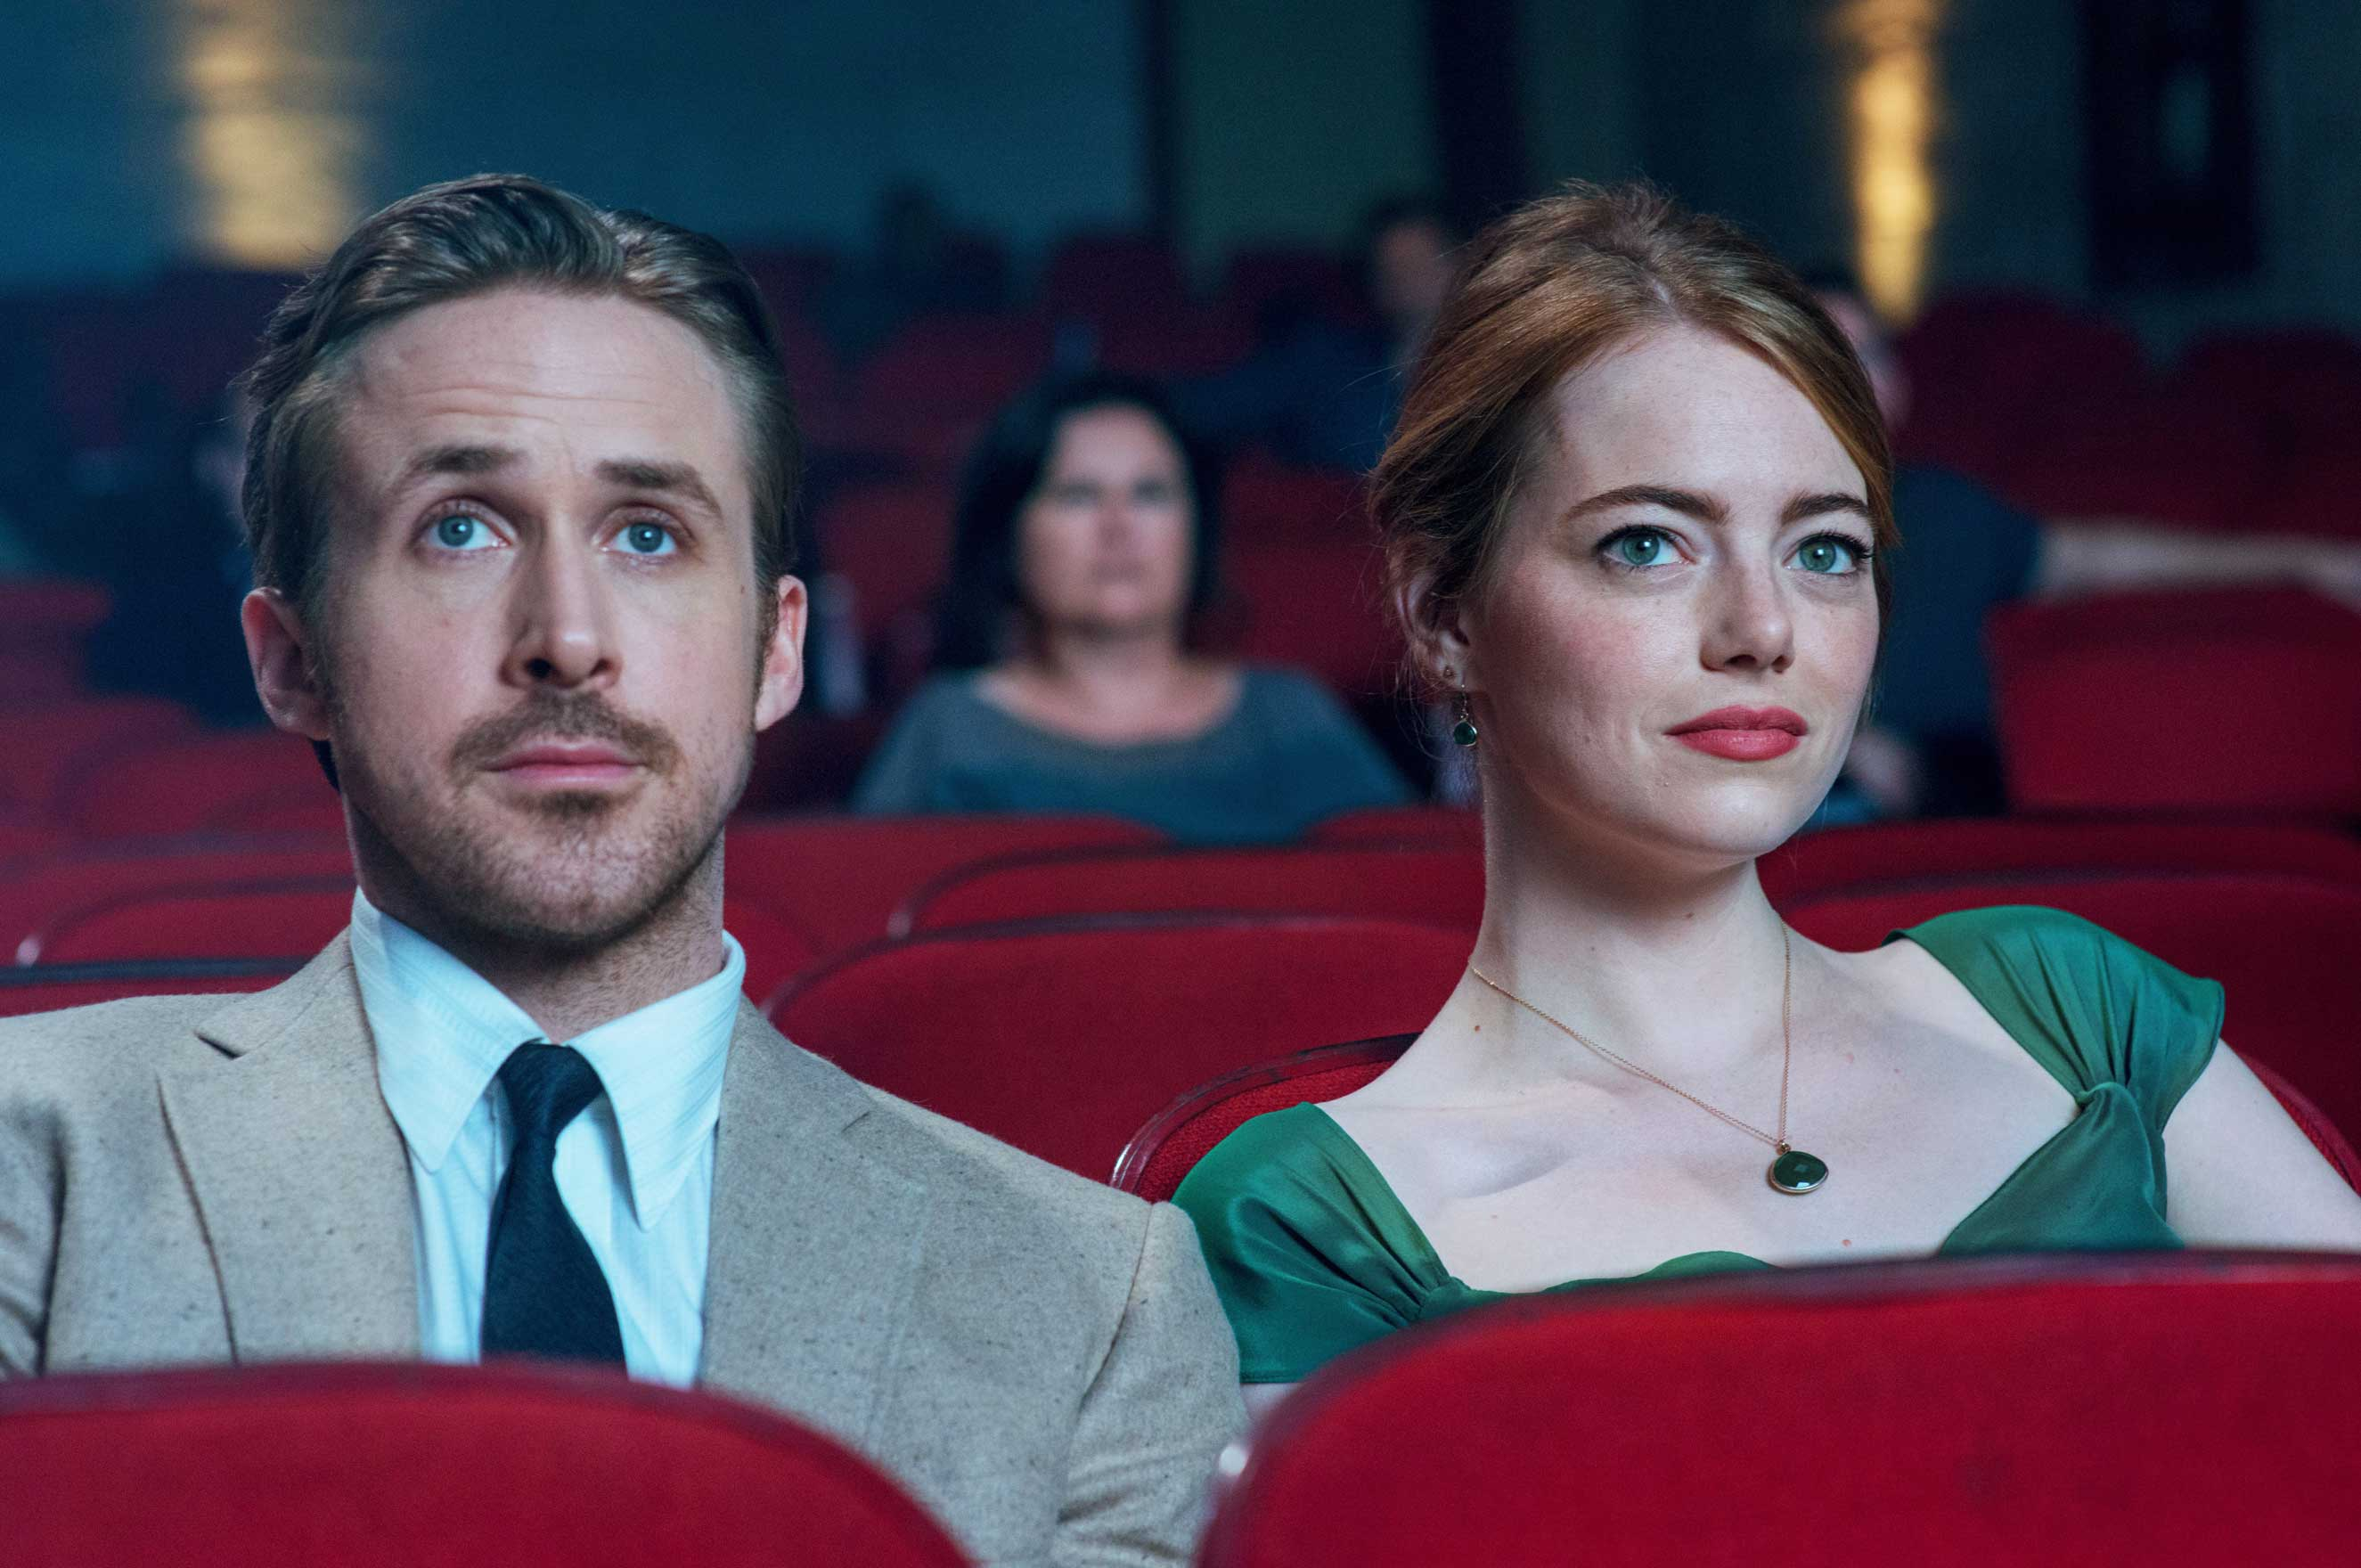 Playing striving artists, Gosling and Stone manage to make La La Land's musical numbers seem natural